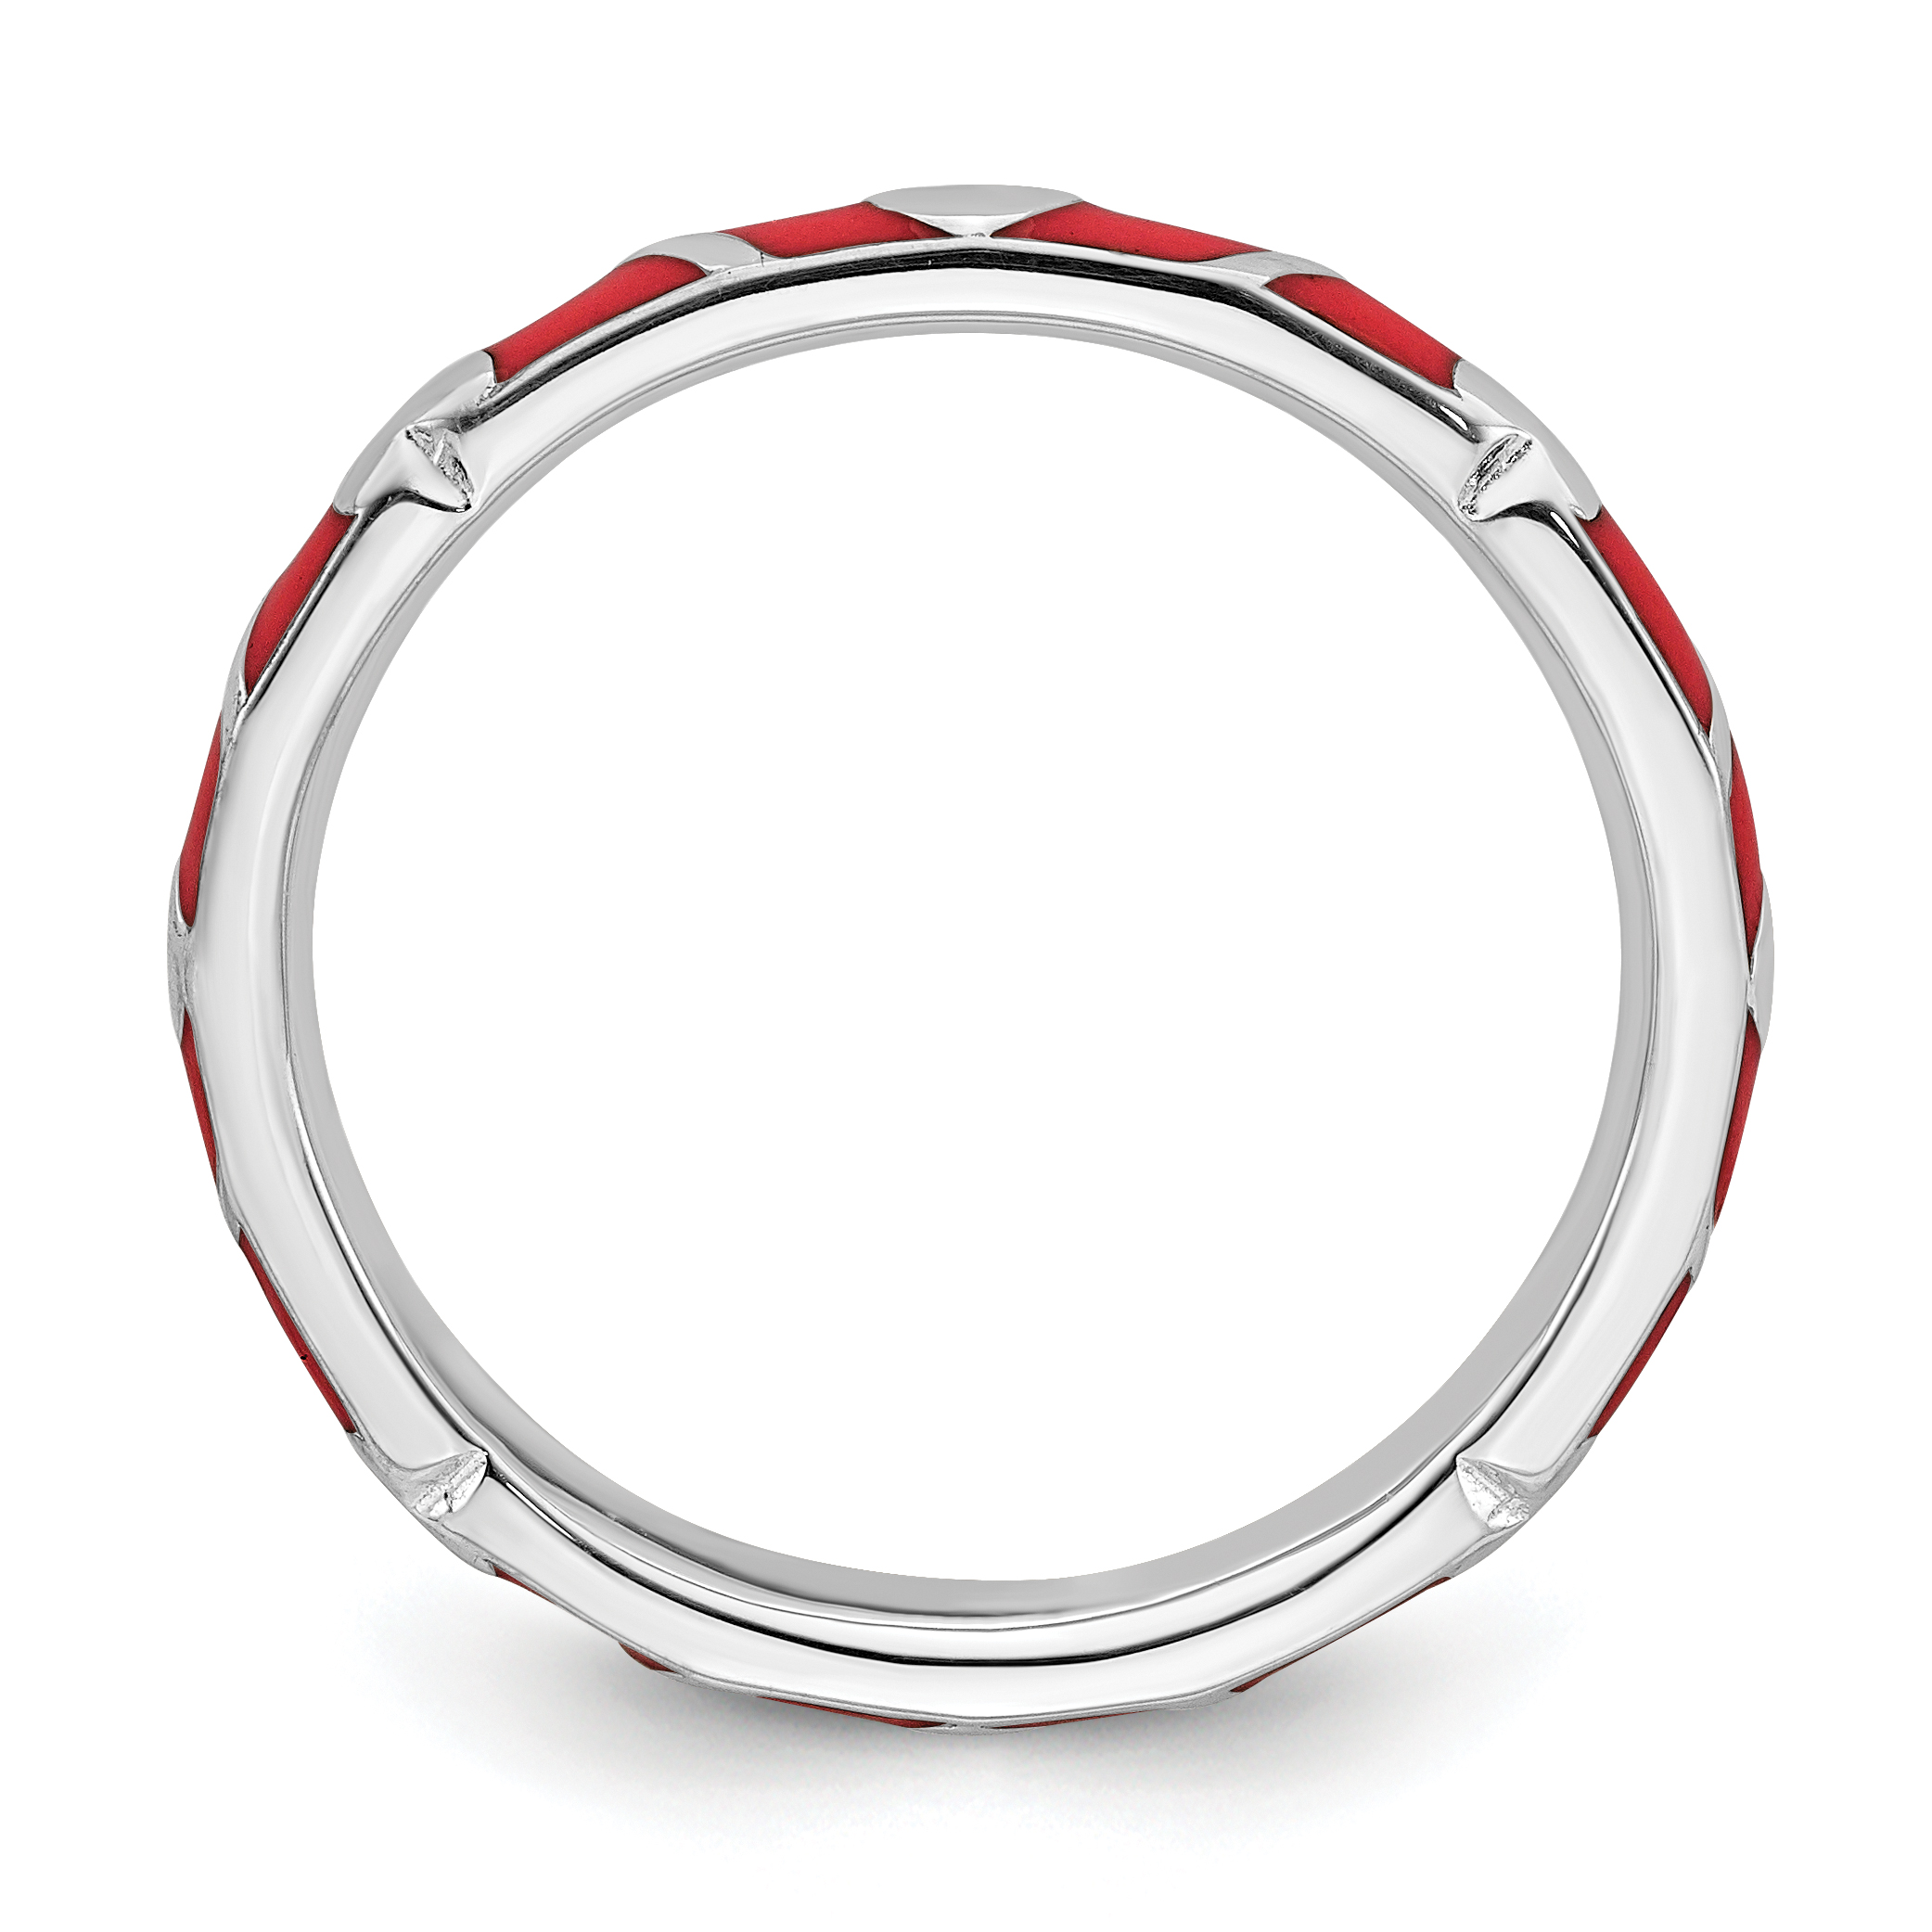 Sterling Silver Stackable Expressions Red Enamel Heart Ring Size 8 - image 2 de 3